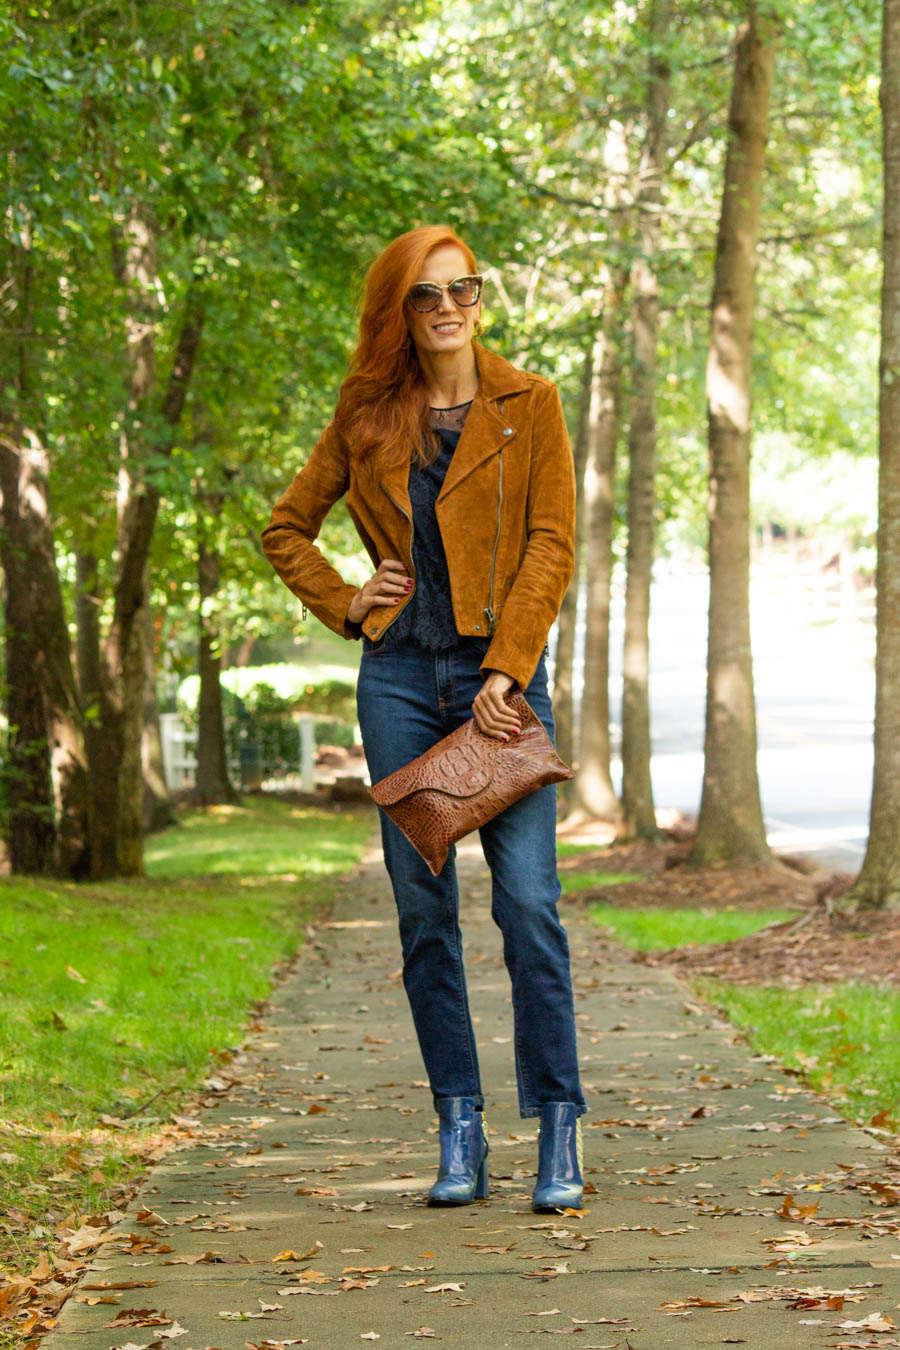 moon d'elle Luxury Italian boots styled with suede jacket and jeans